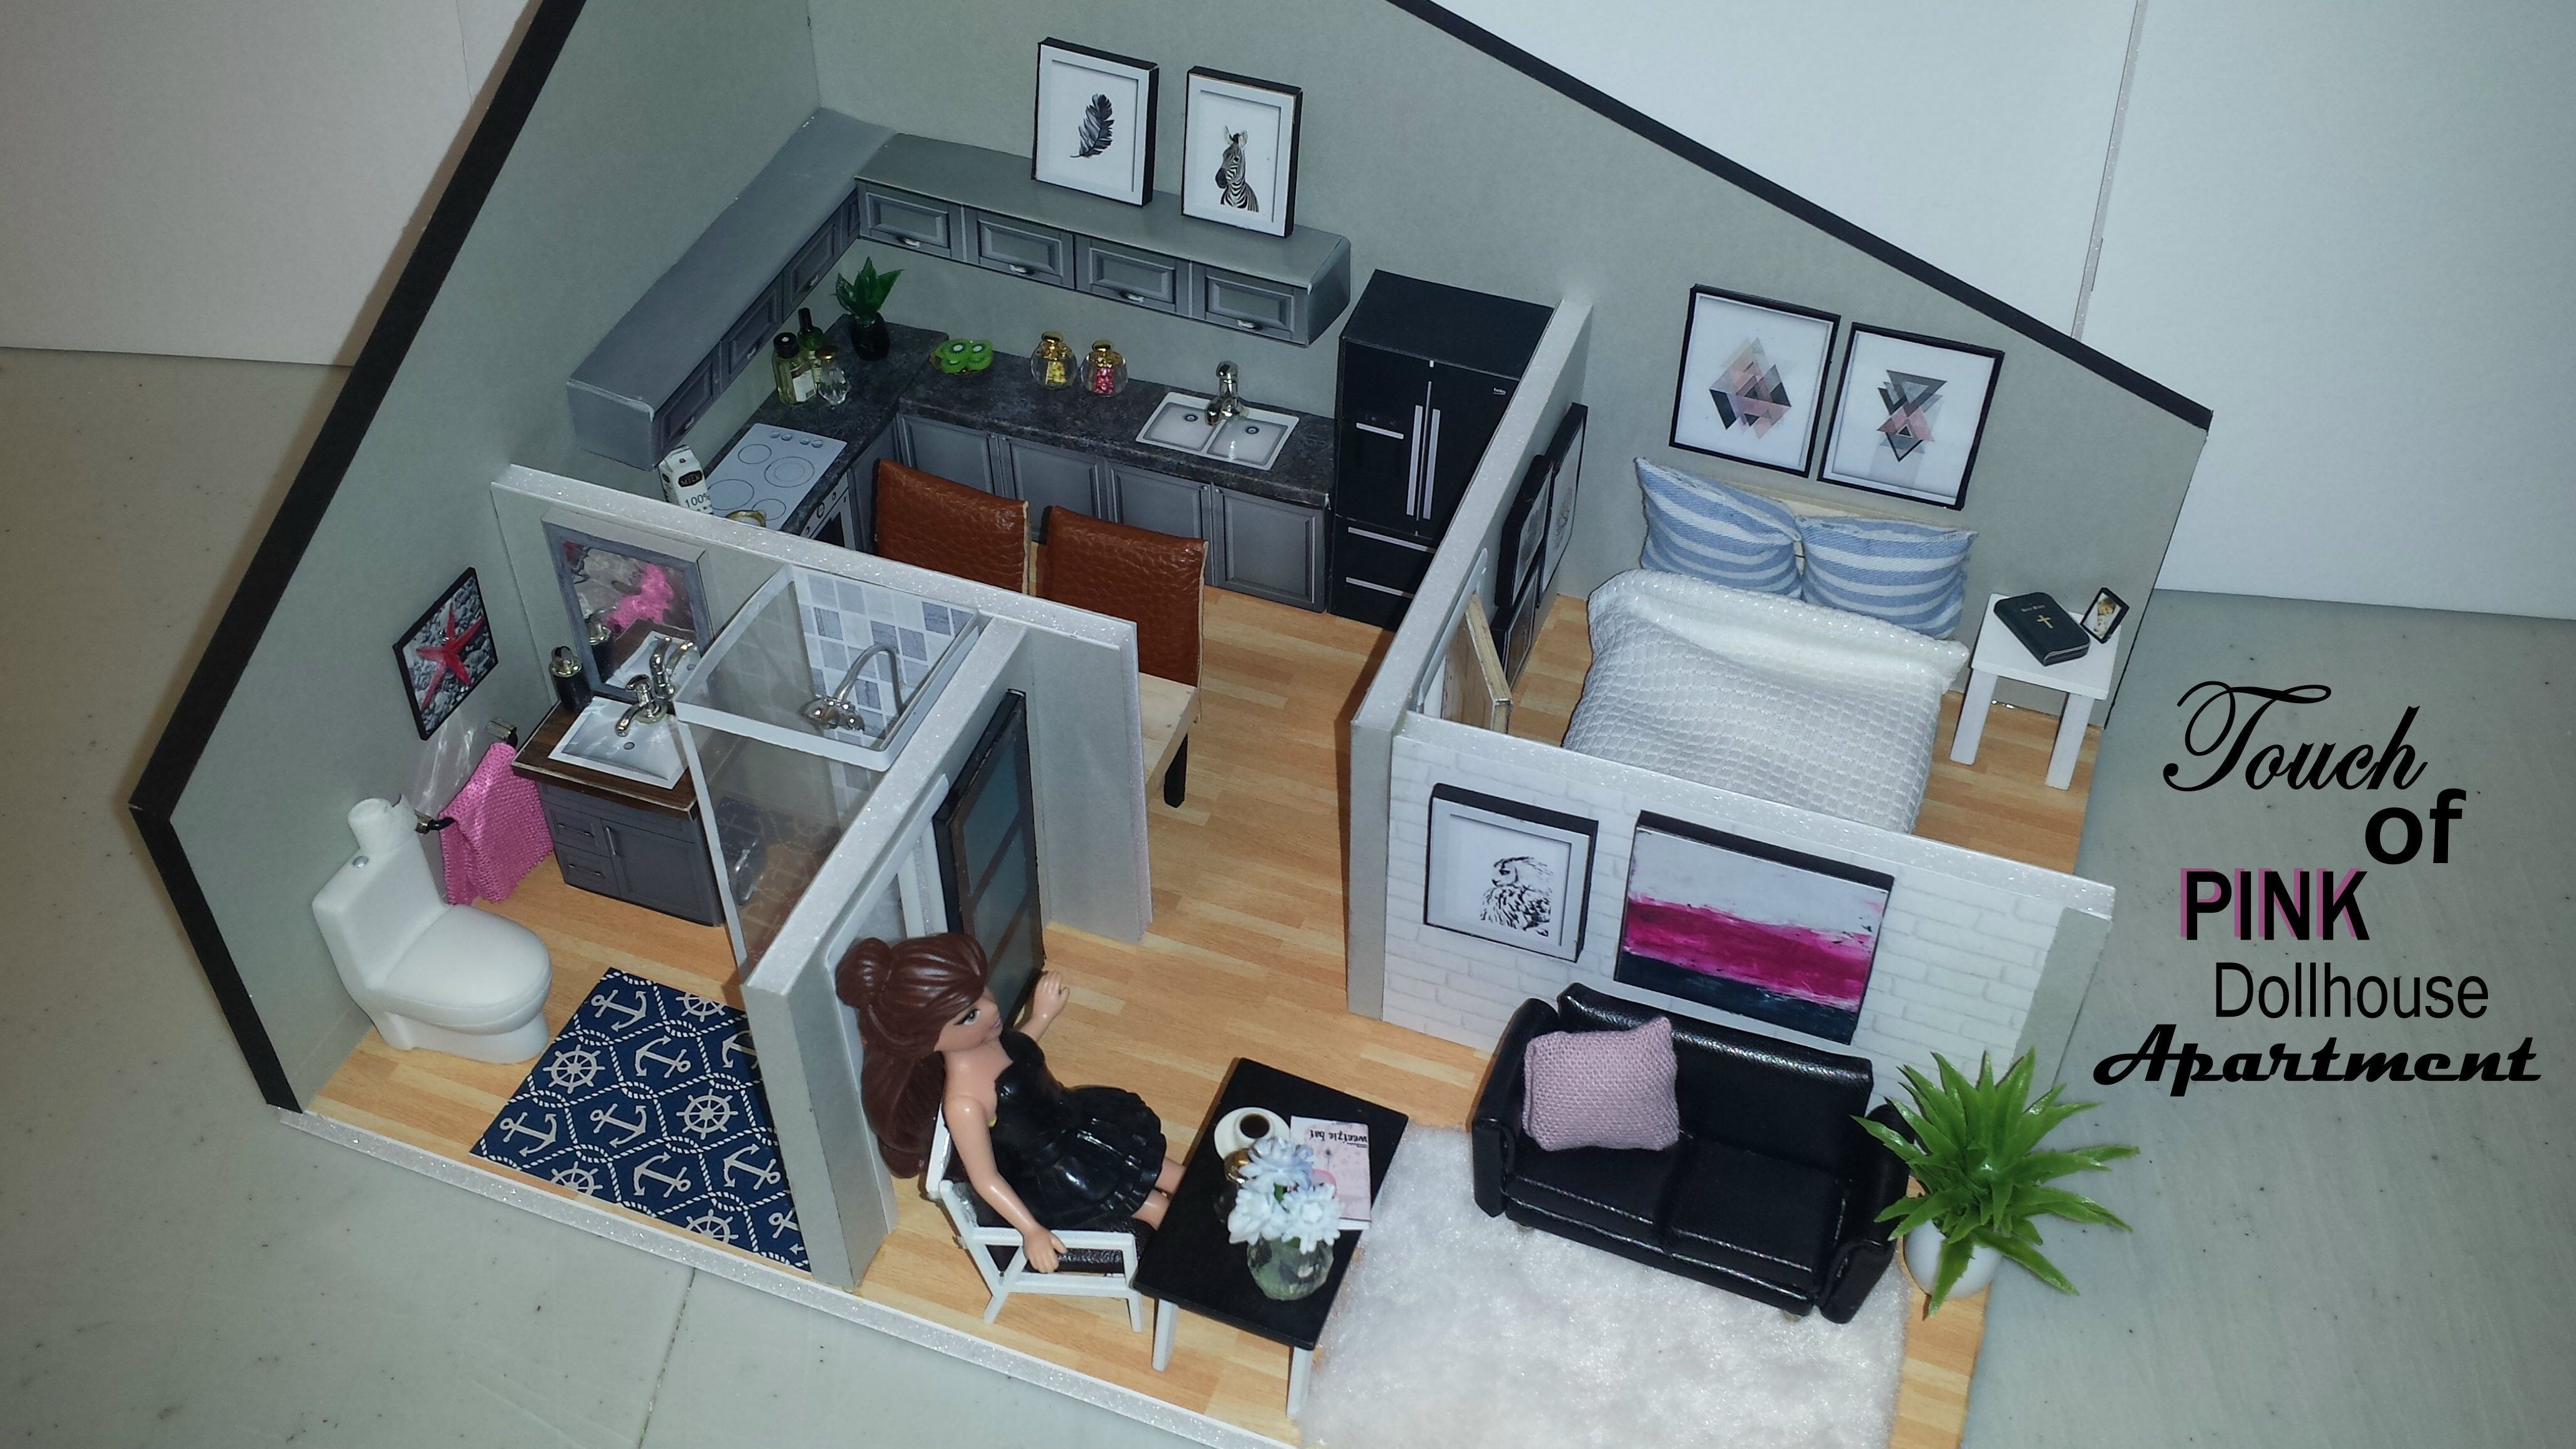 Diy miniature touch of pink dollhouse apartment